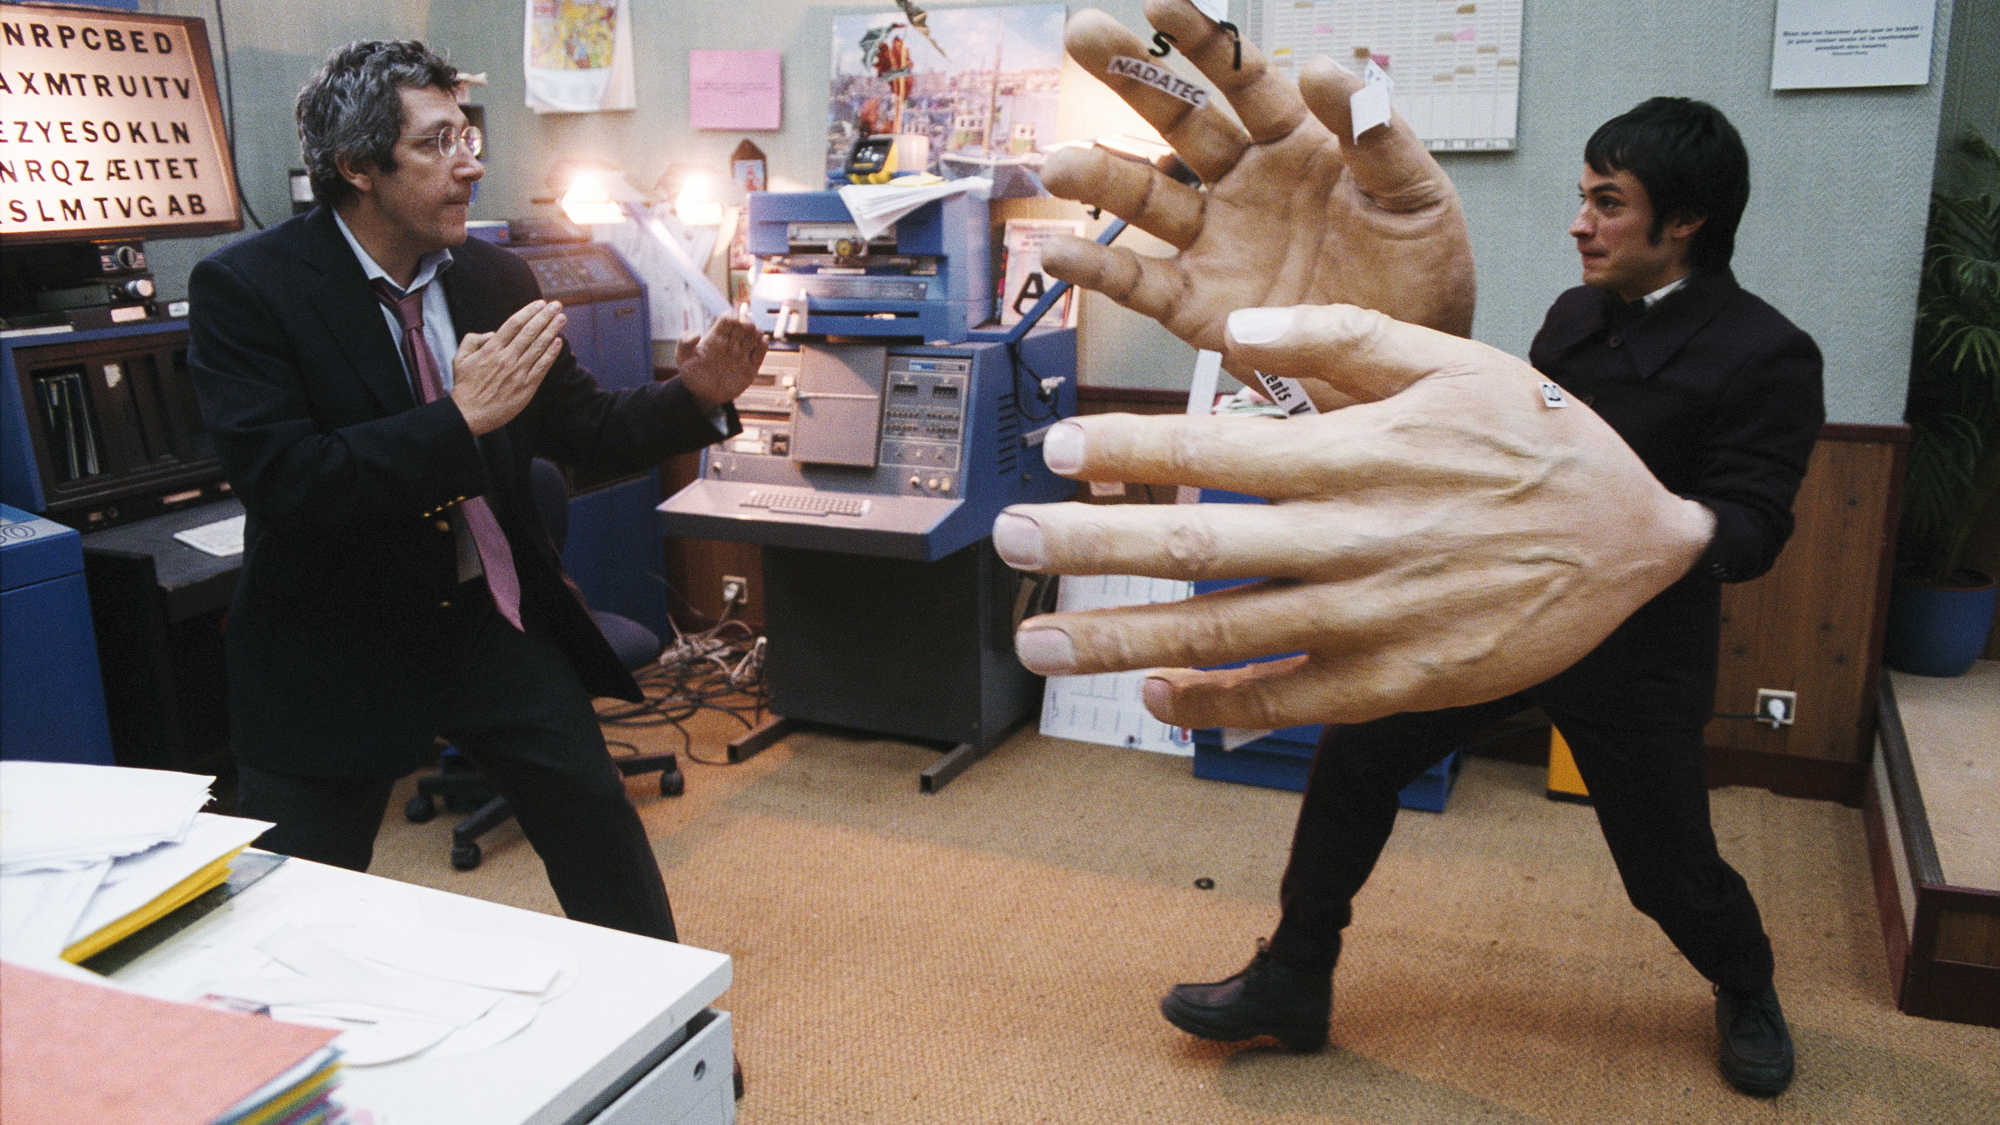 Gael Garcia Bernal (r) has a dream in which he has giant hands, along with co-worker Alain Chabat (l) in The Science of Sleep (2006)